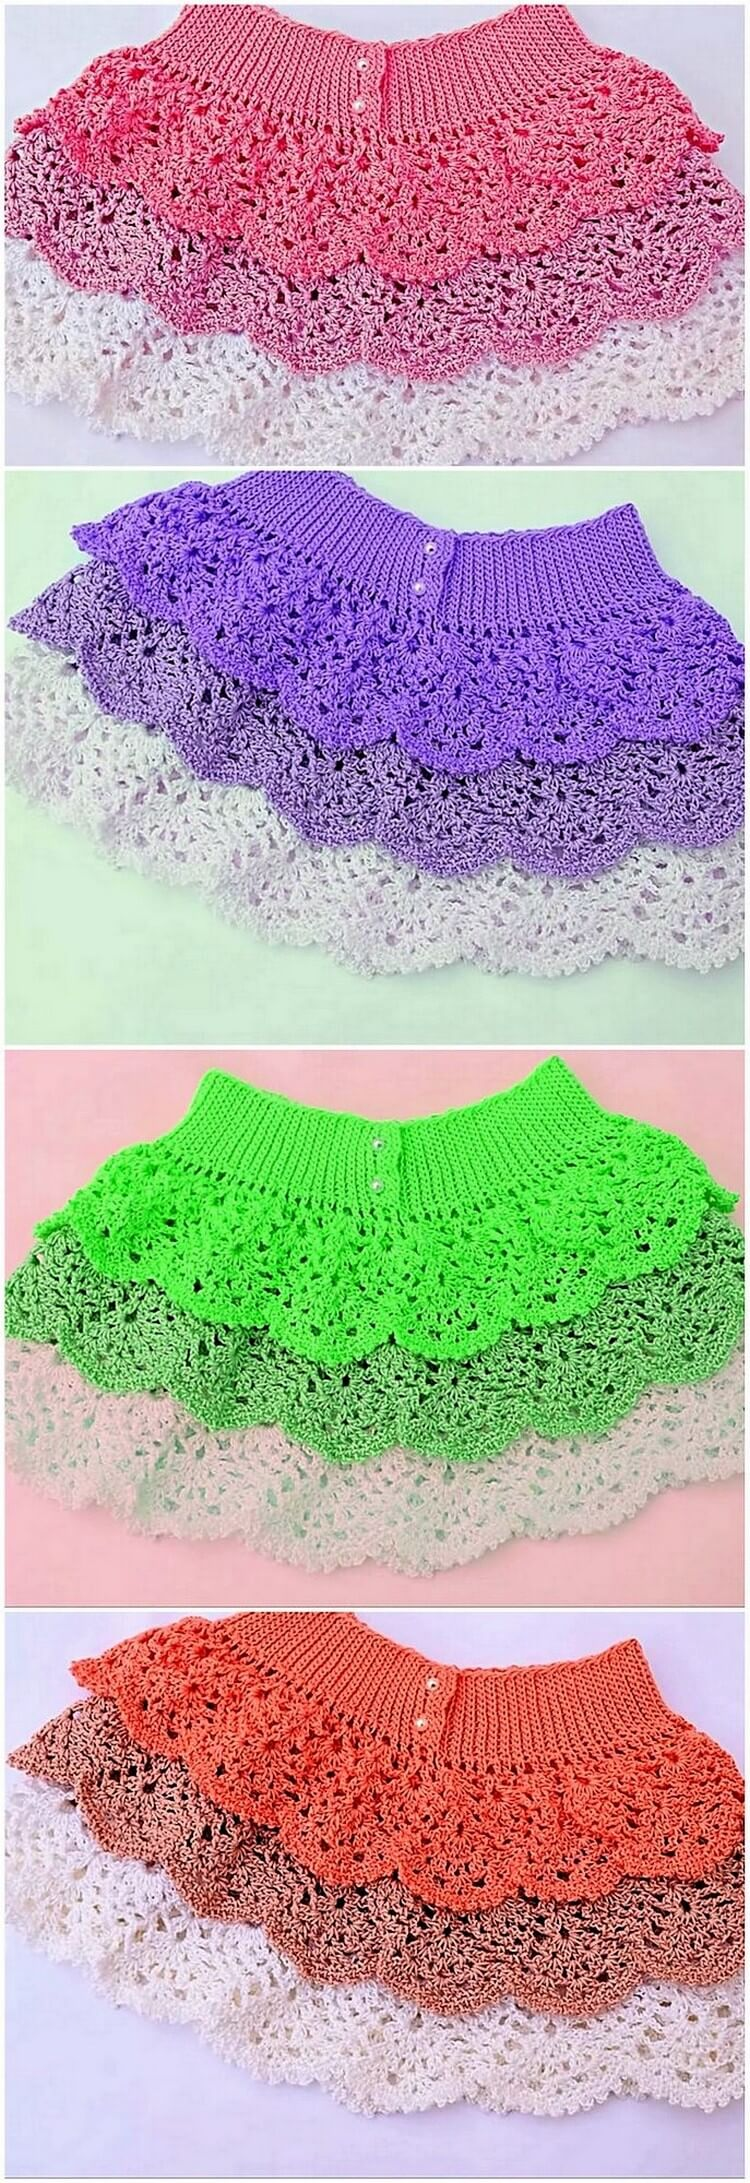 Crochet Frock Creation